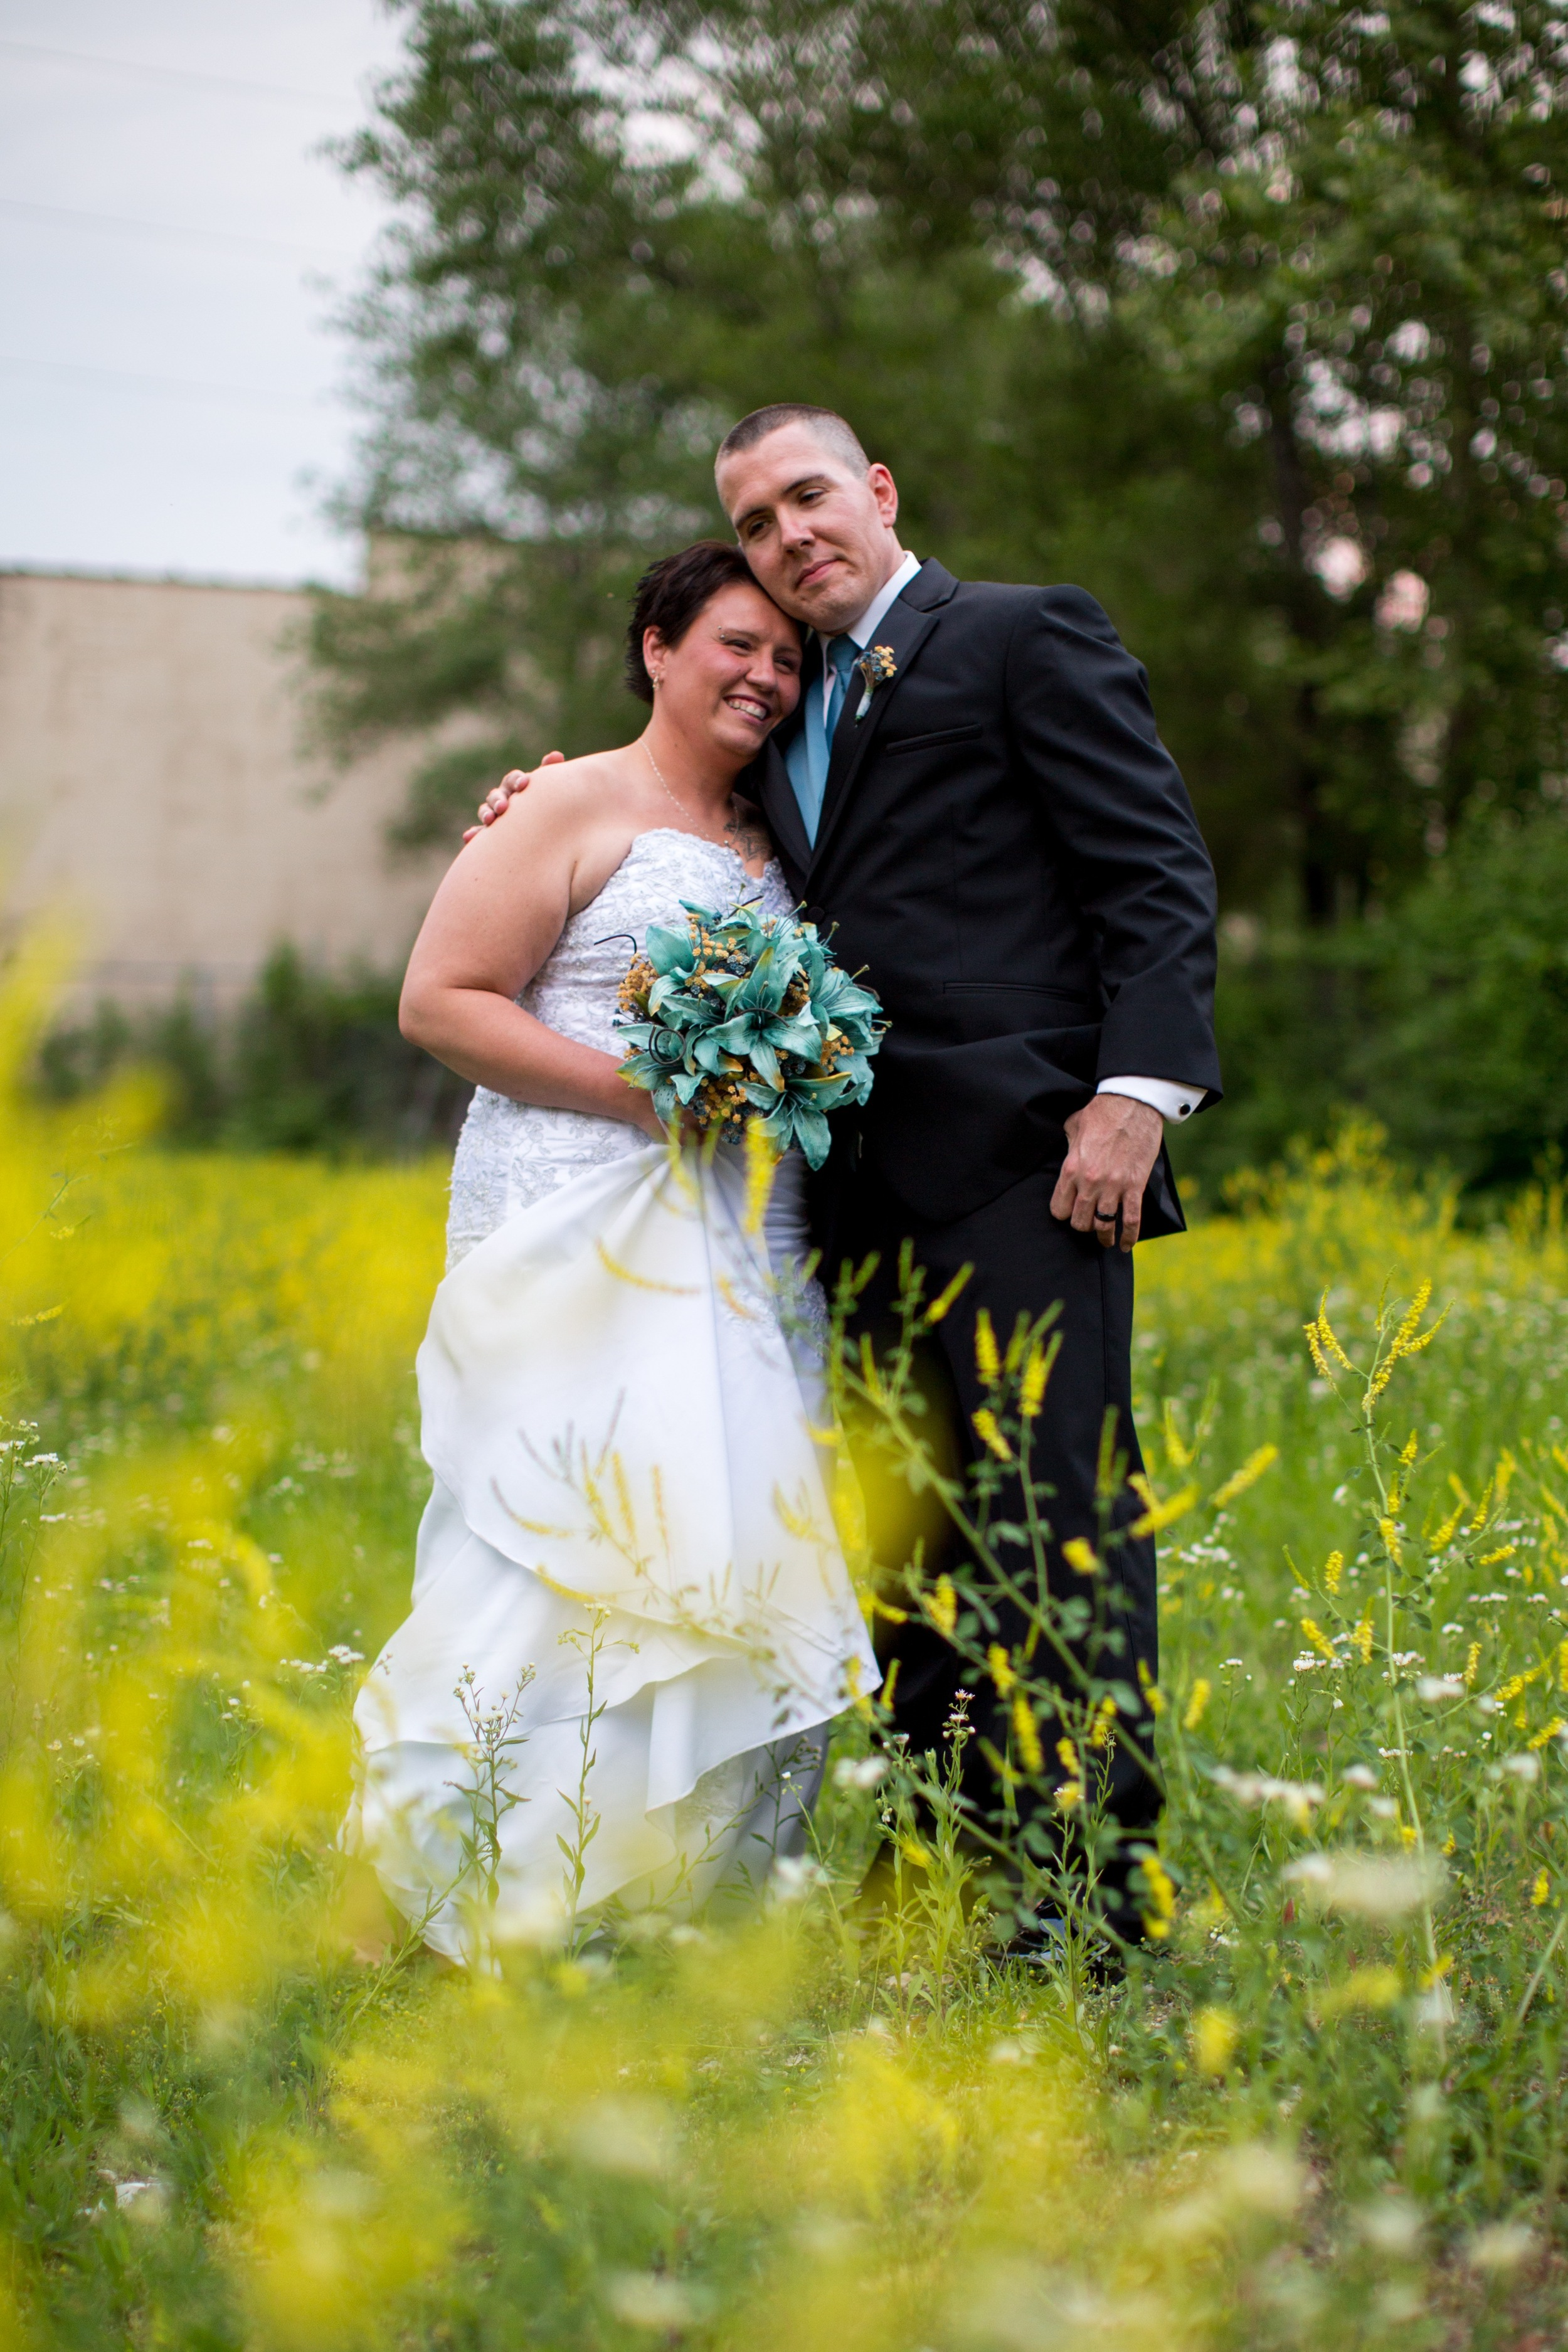 Photography by Meg Kumin, a photographer for The Vow Exchange